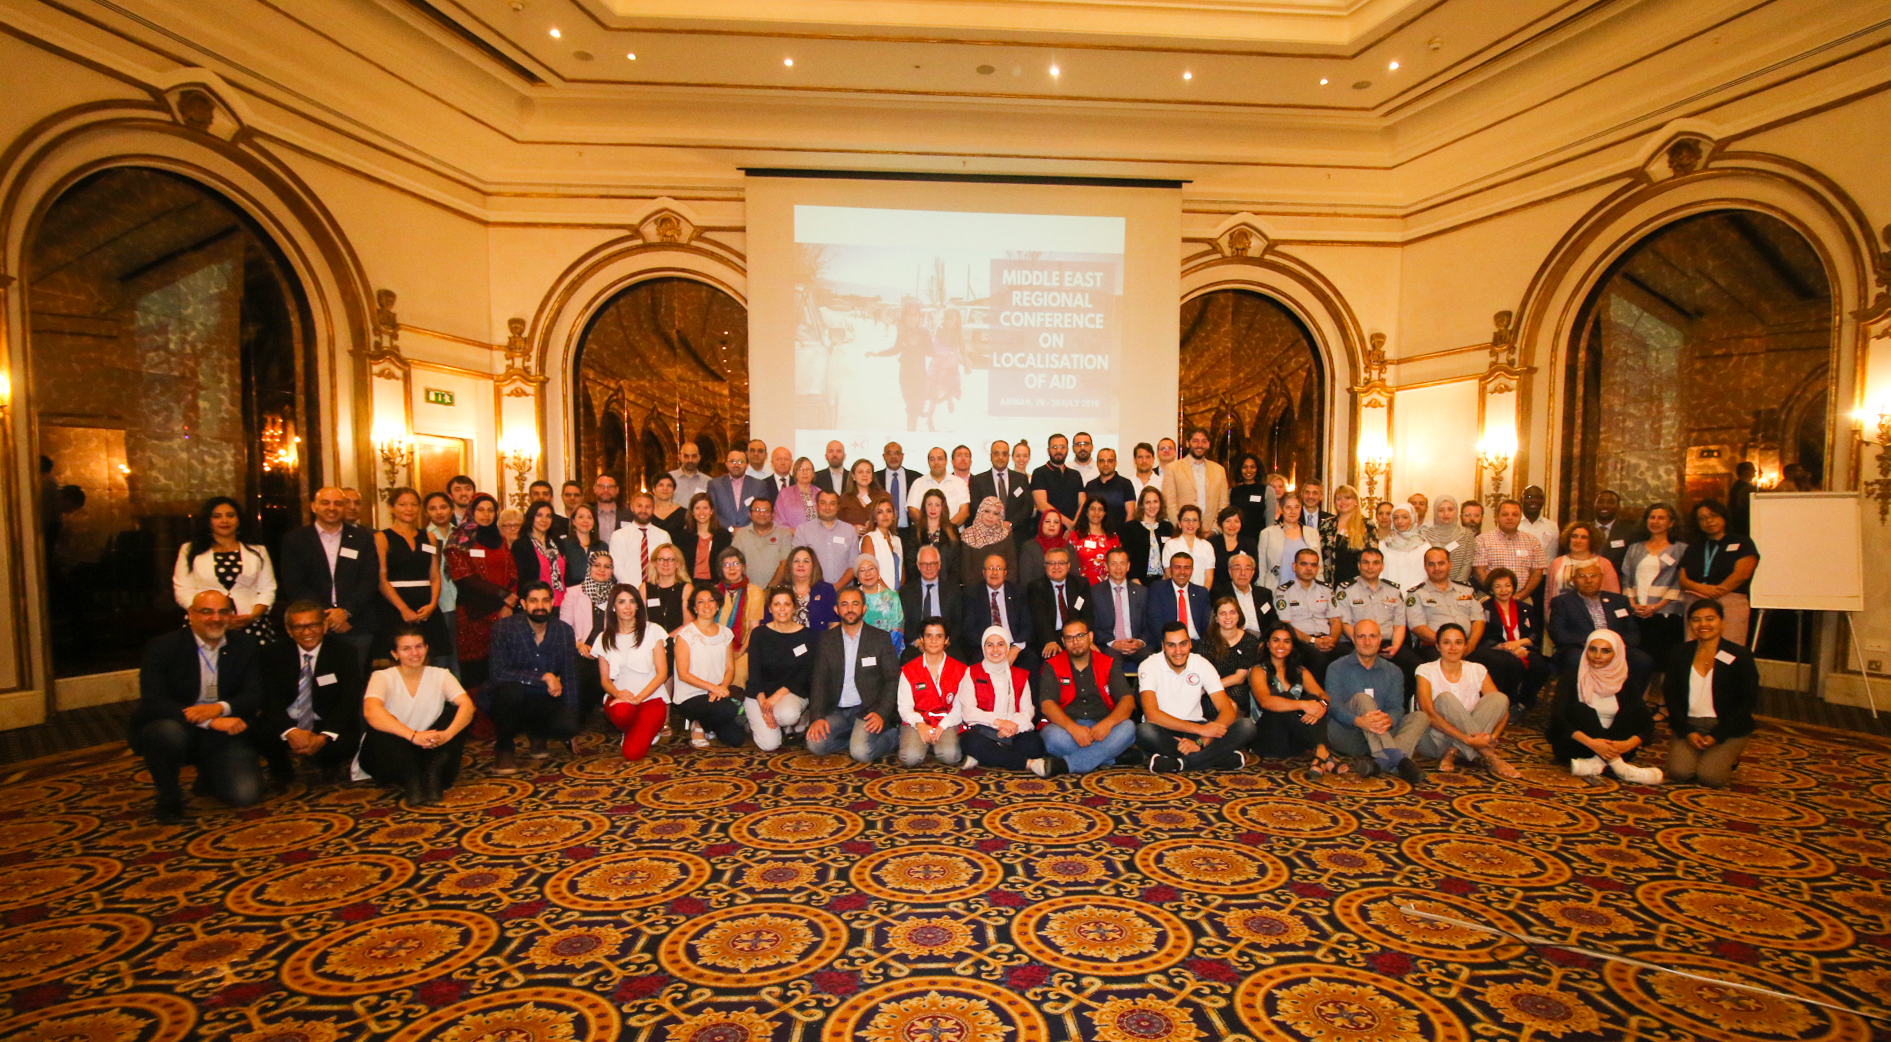 Middle East Regional Conference on Localisation - Amman, 29-30 July 2019